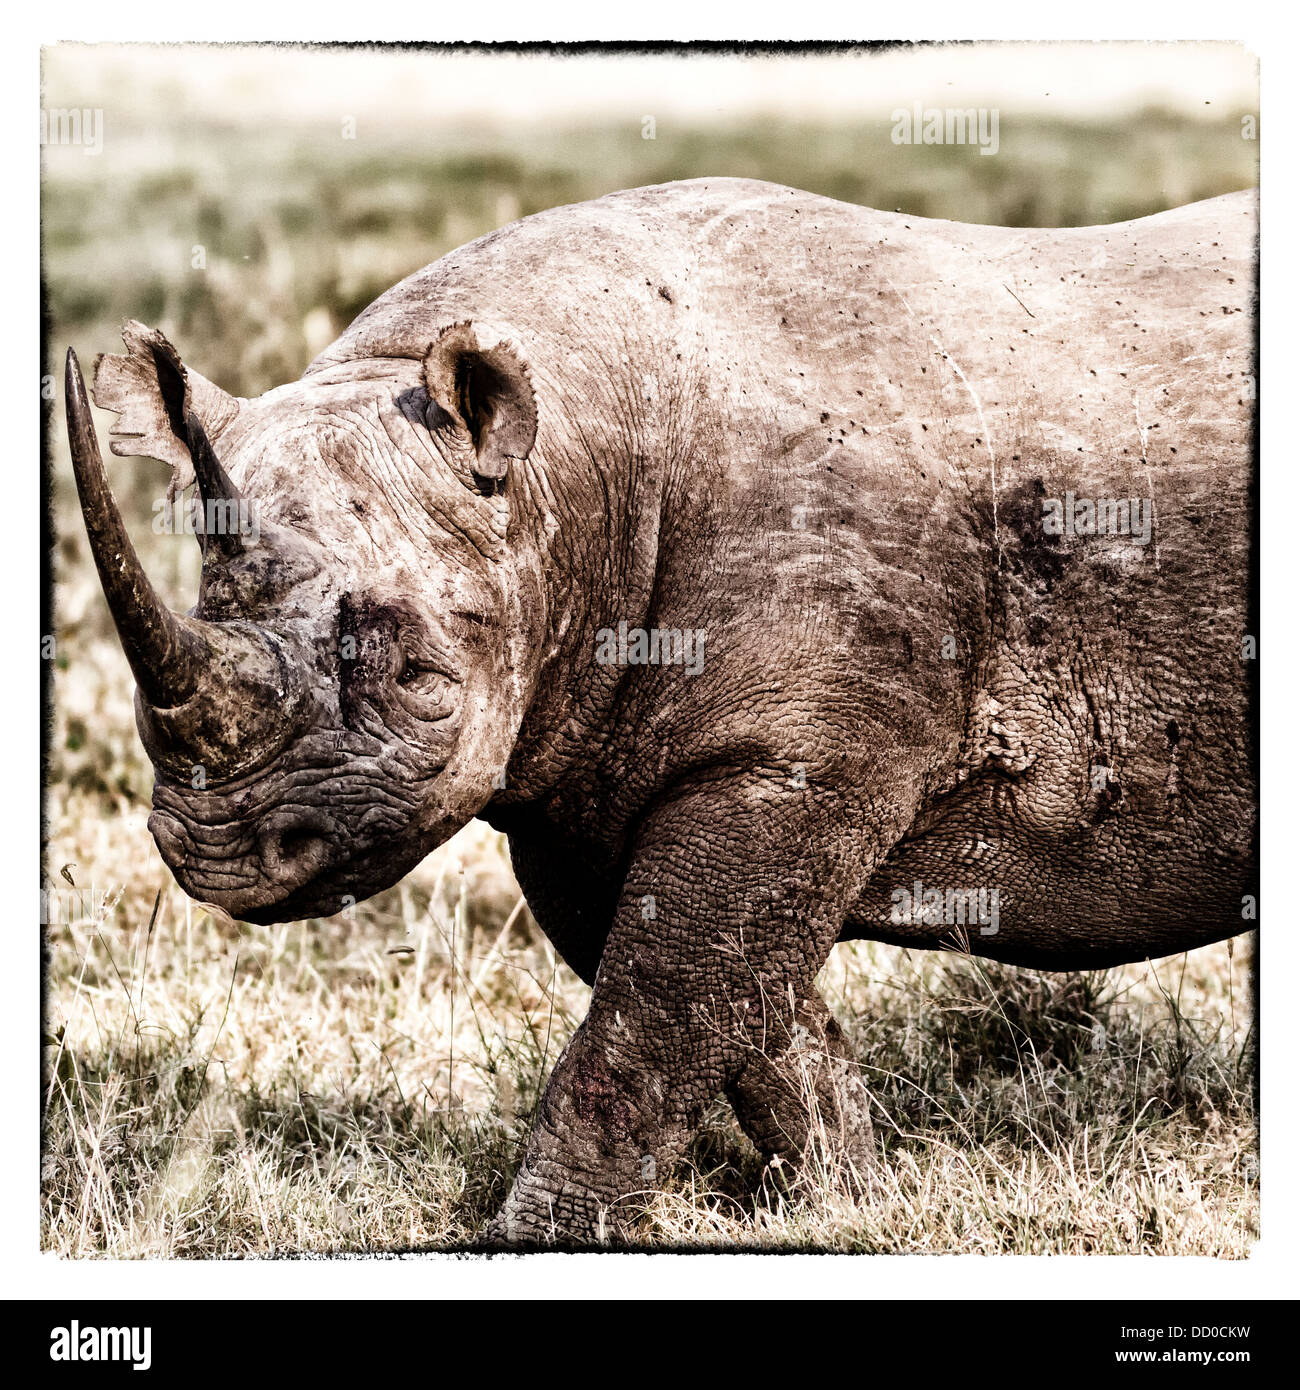 Single black rhino walking in open woodland, oblique side view detail of head and front in stylised monochrome, - Stock Image